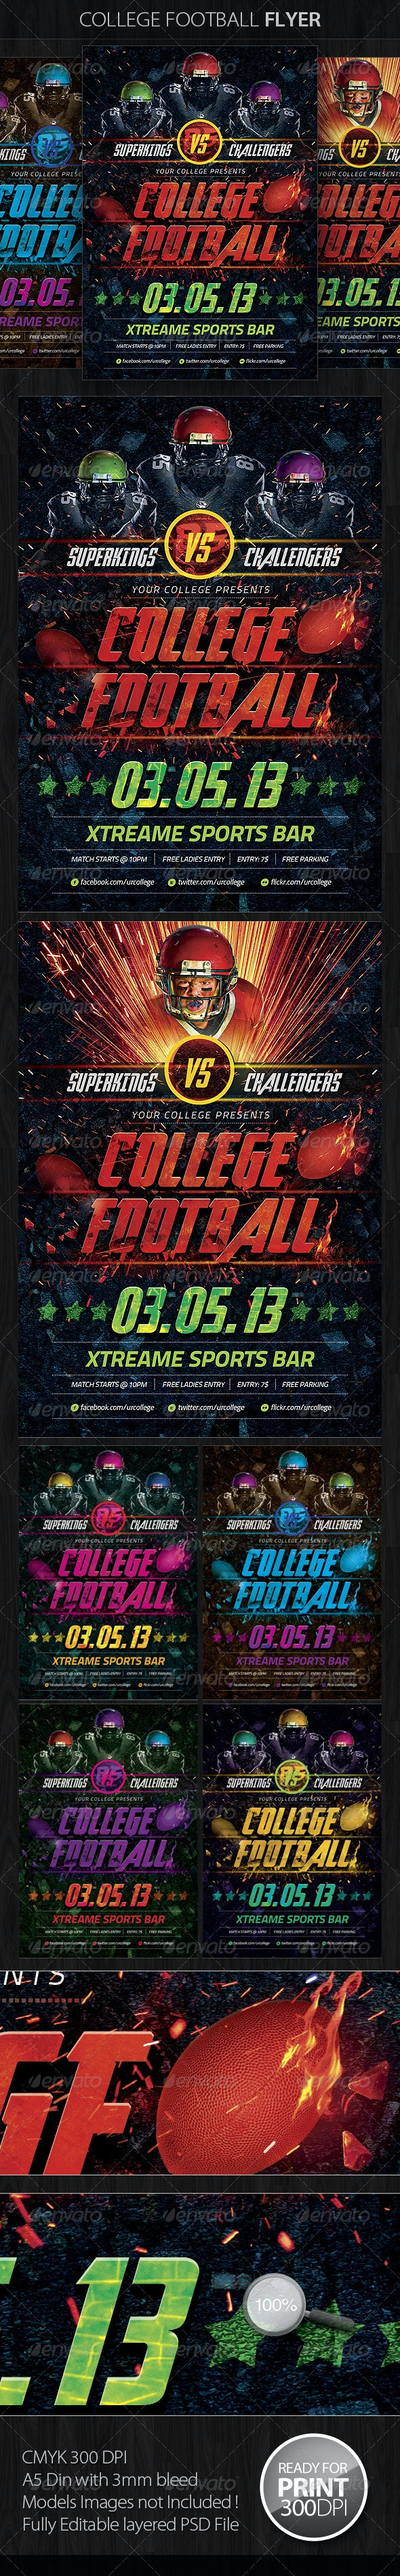 College Football Flyer Template - Sports Events